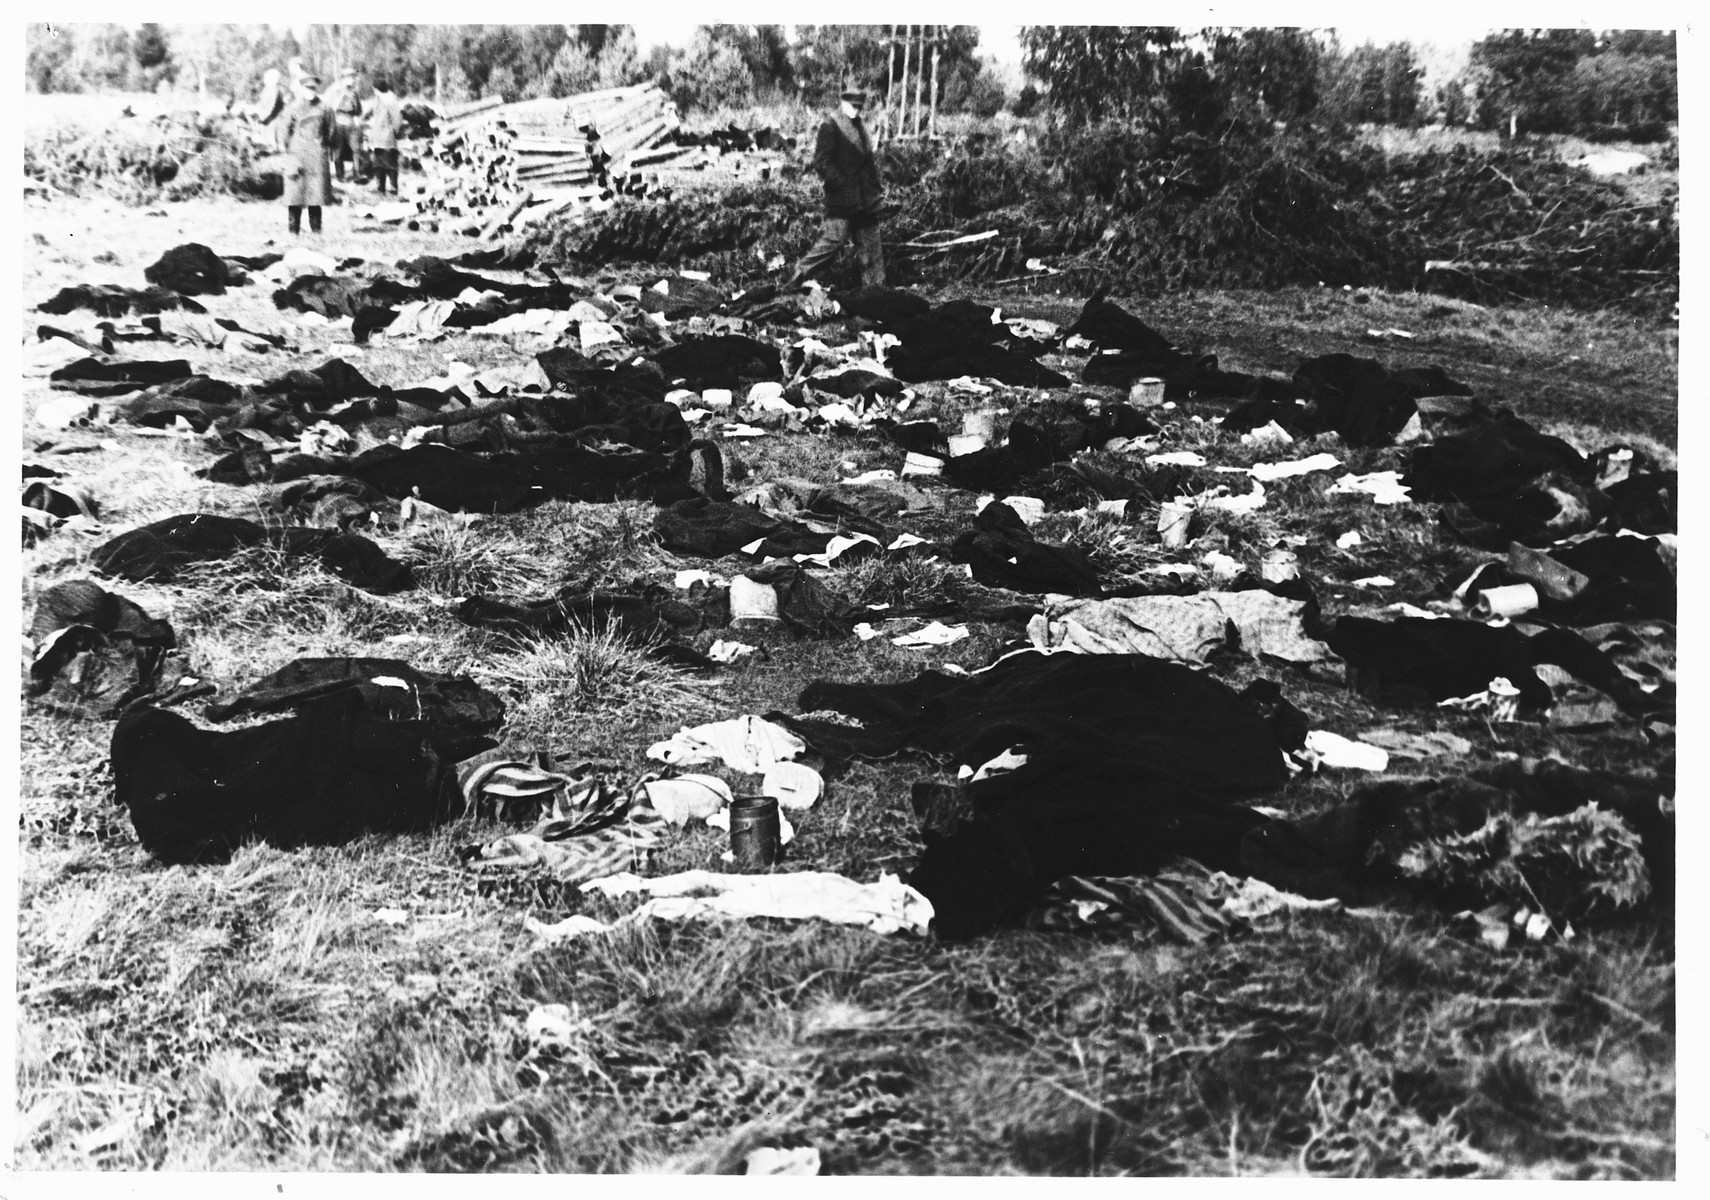 Soviet soldiers observe burned corpses lying on the grounds of the Klooga concentration camp.